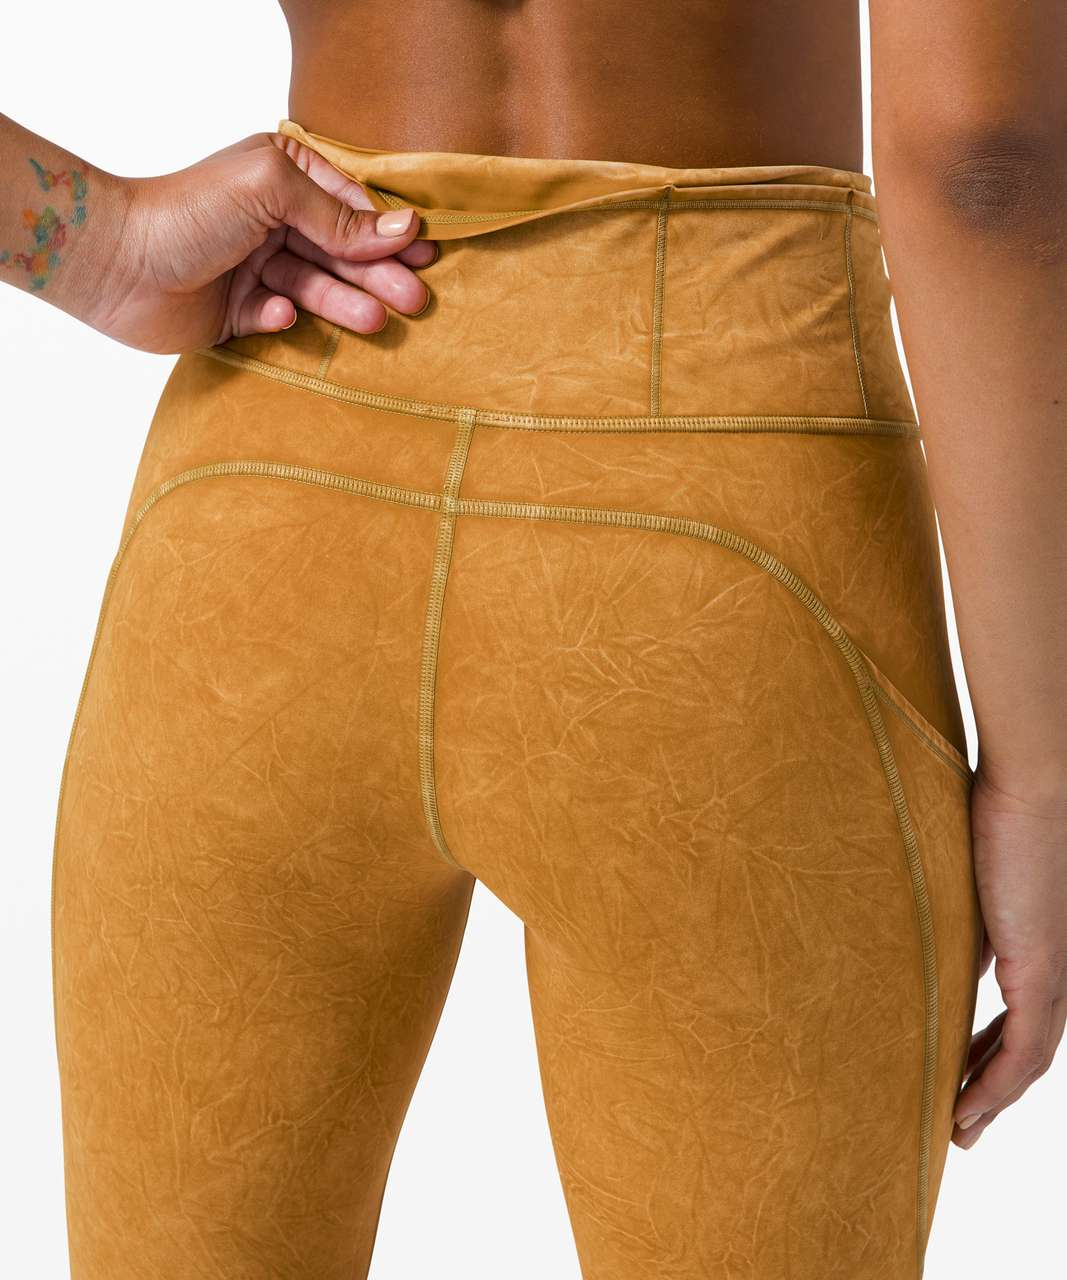 """Lululemon Fast and Free Tight II 25"""" Ice Dye *Non-Reflective - Ice Wash Spiced Bronze"""